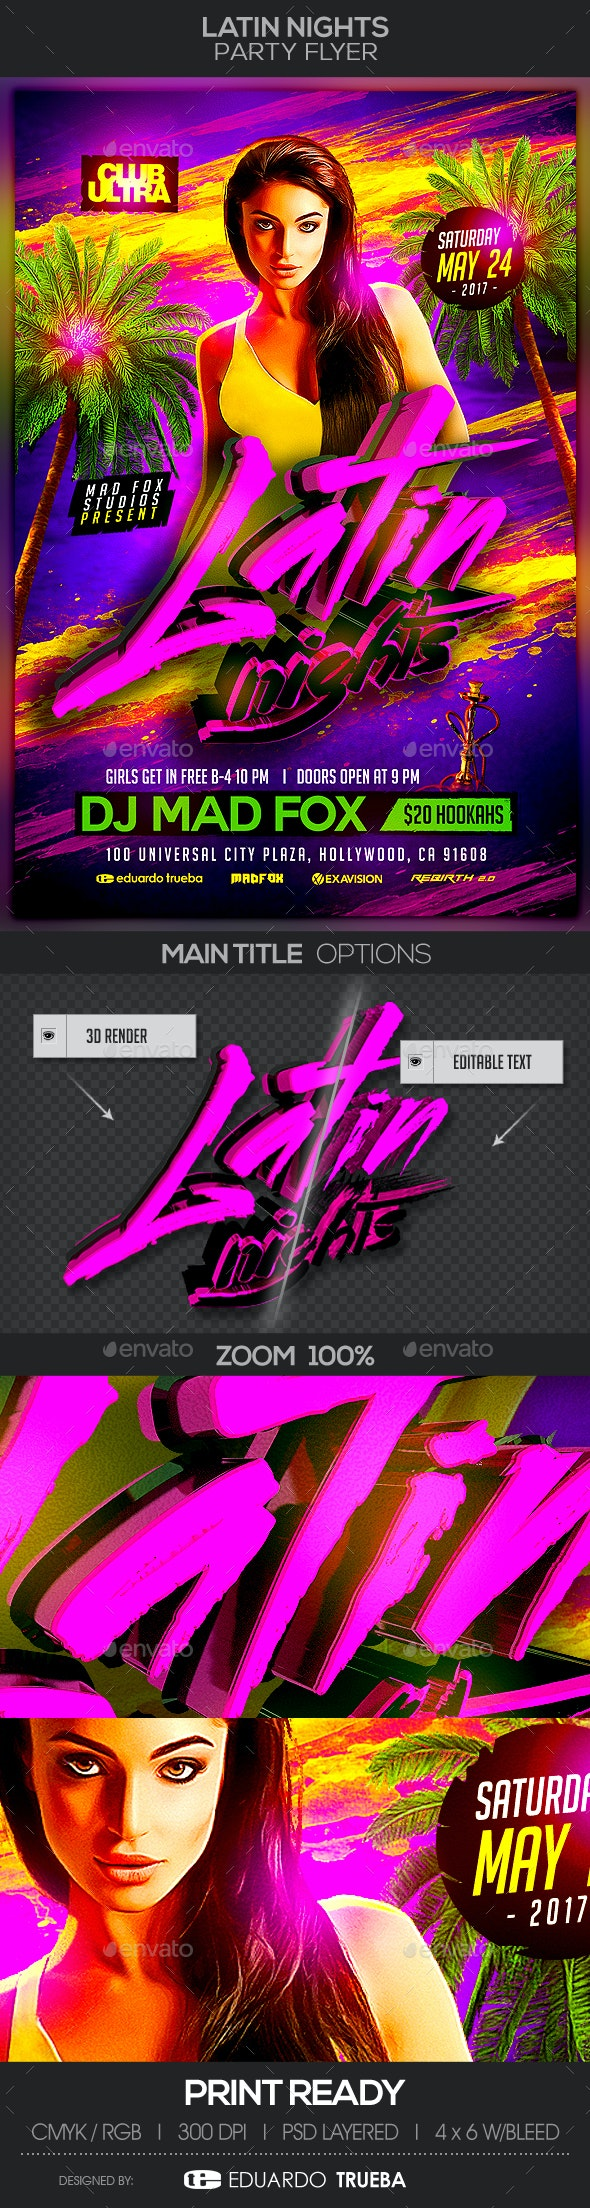 Latin Nights Party Flyer - Clubs & Parties Events